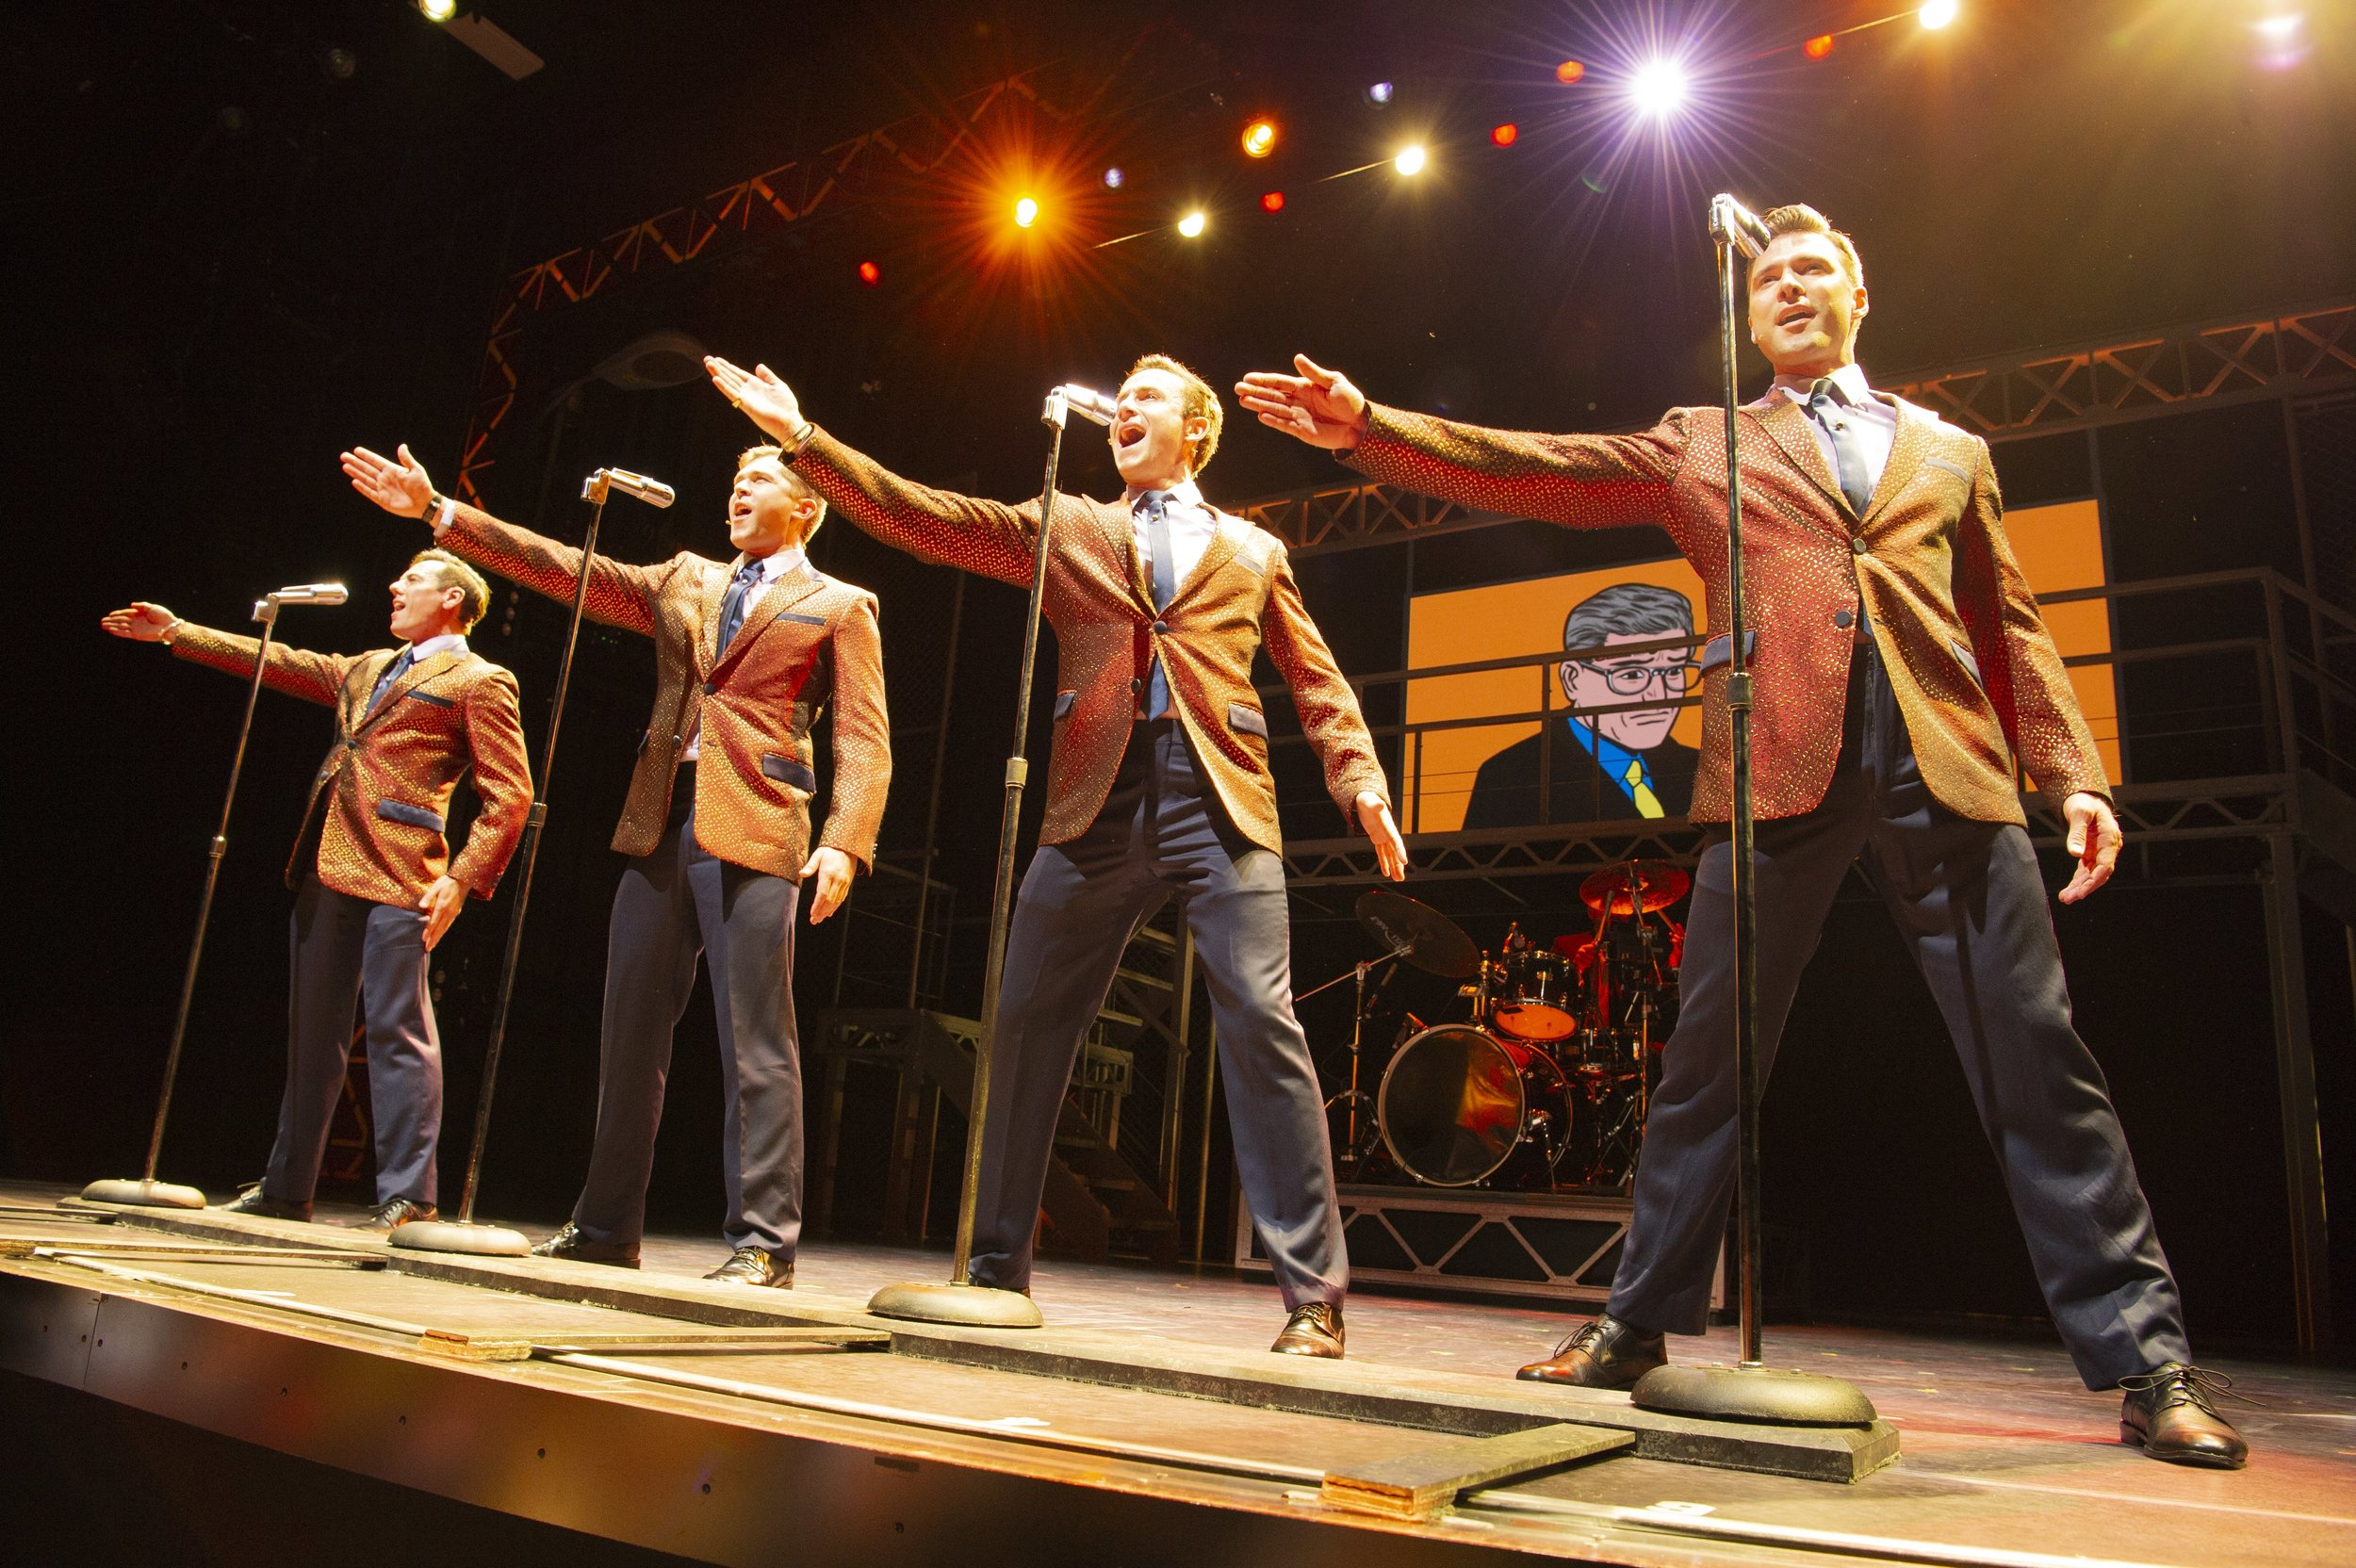 ncl_Bliss_Show_Jersey Boys_1332.jpeg